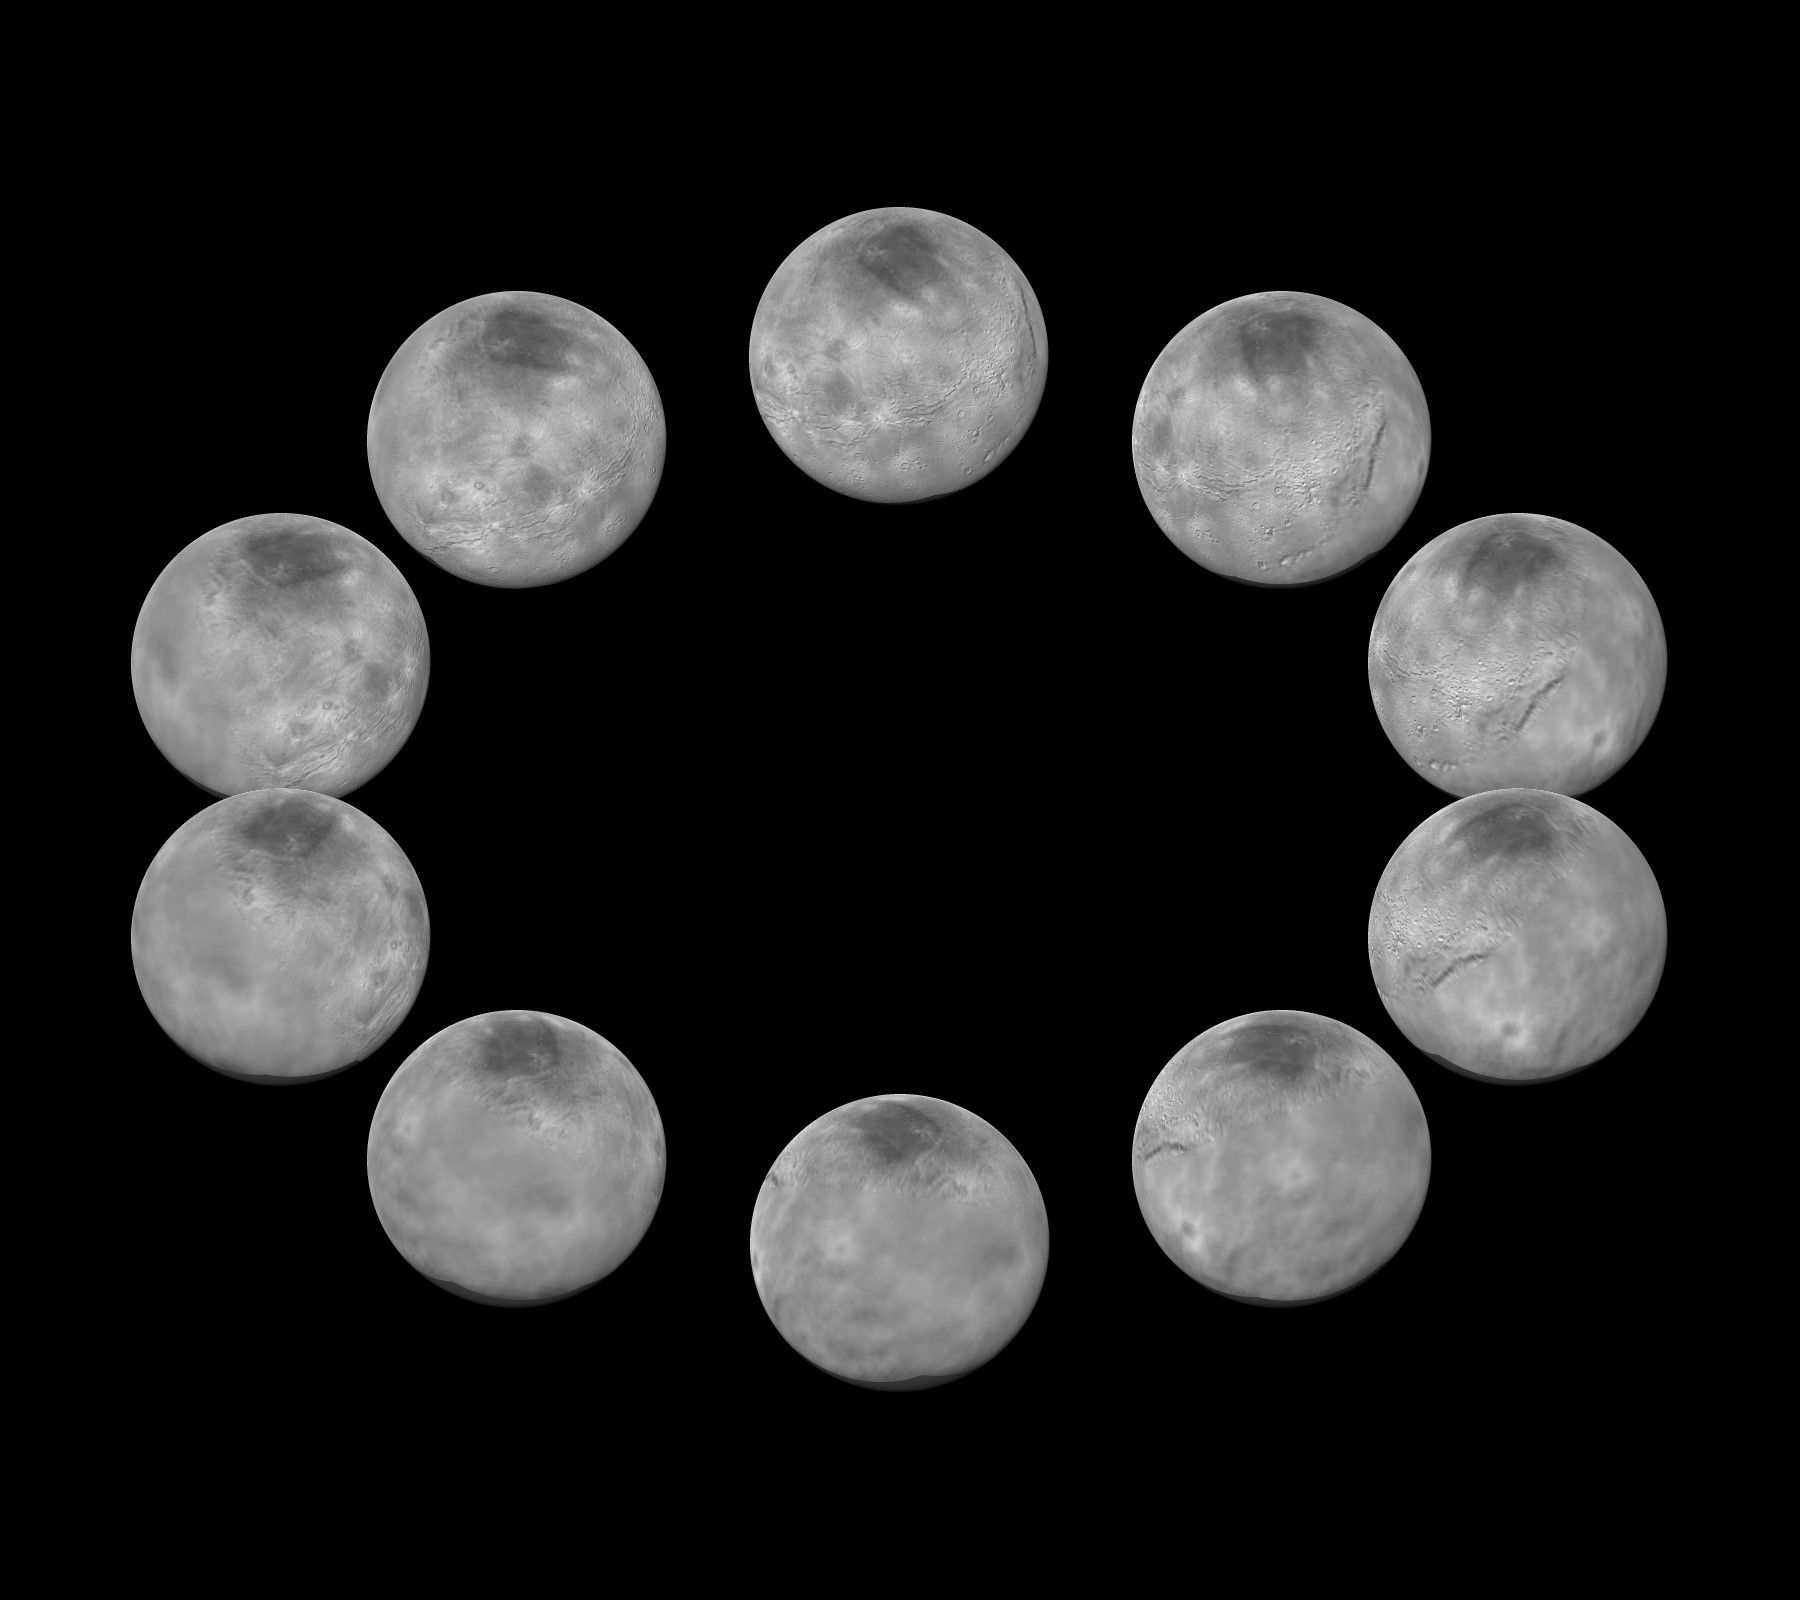 Charon Moon: A Full Work Day On Pluto Would Be A Killer